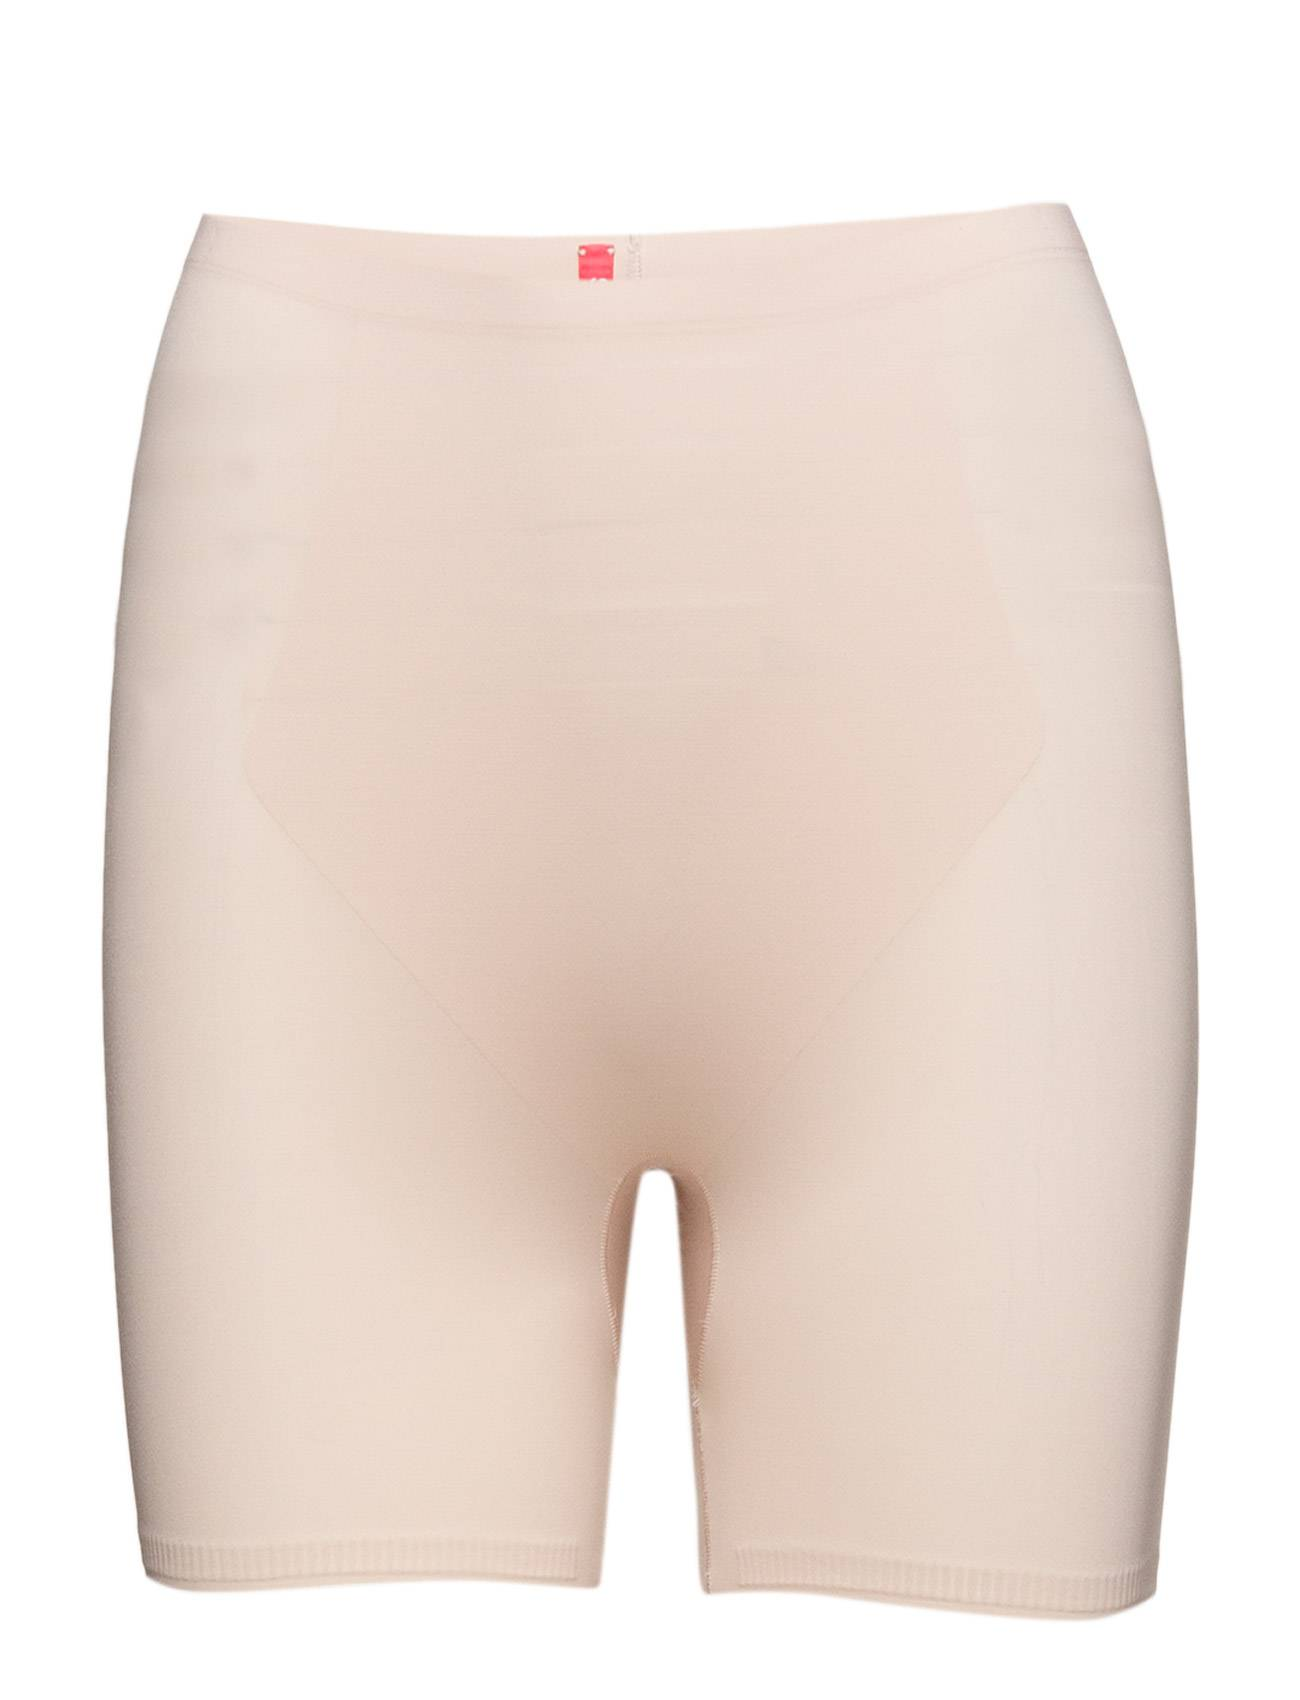 Spanx Girl Short Thinstincts